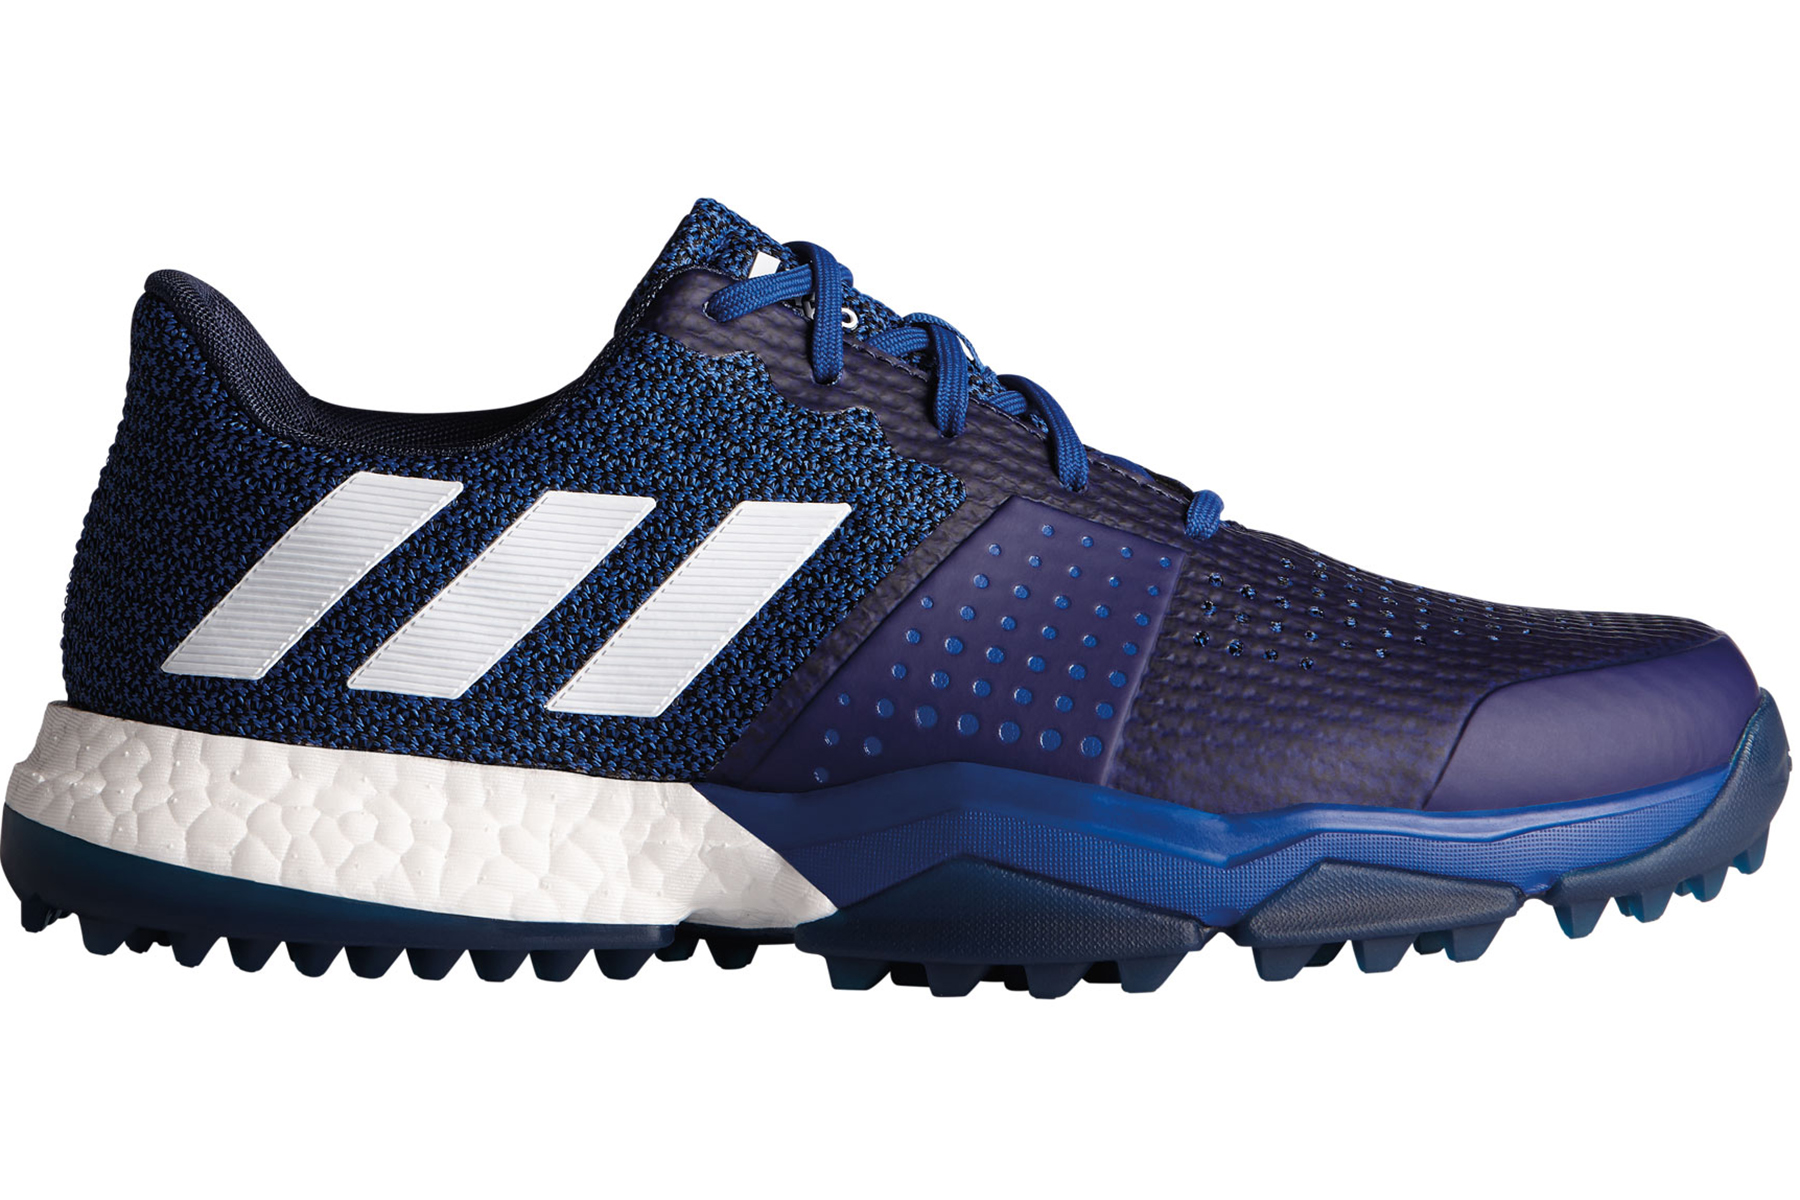 Adidas Golf Shoes Online